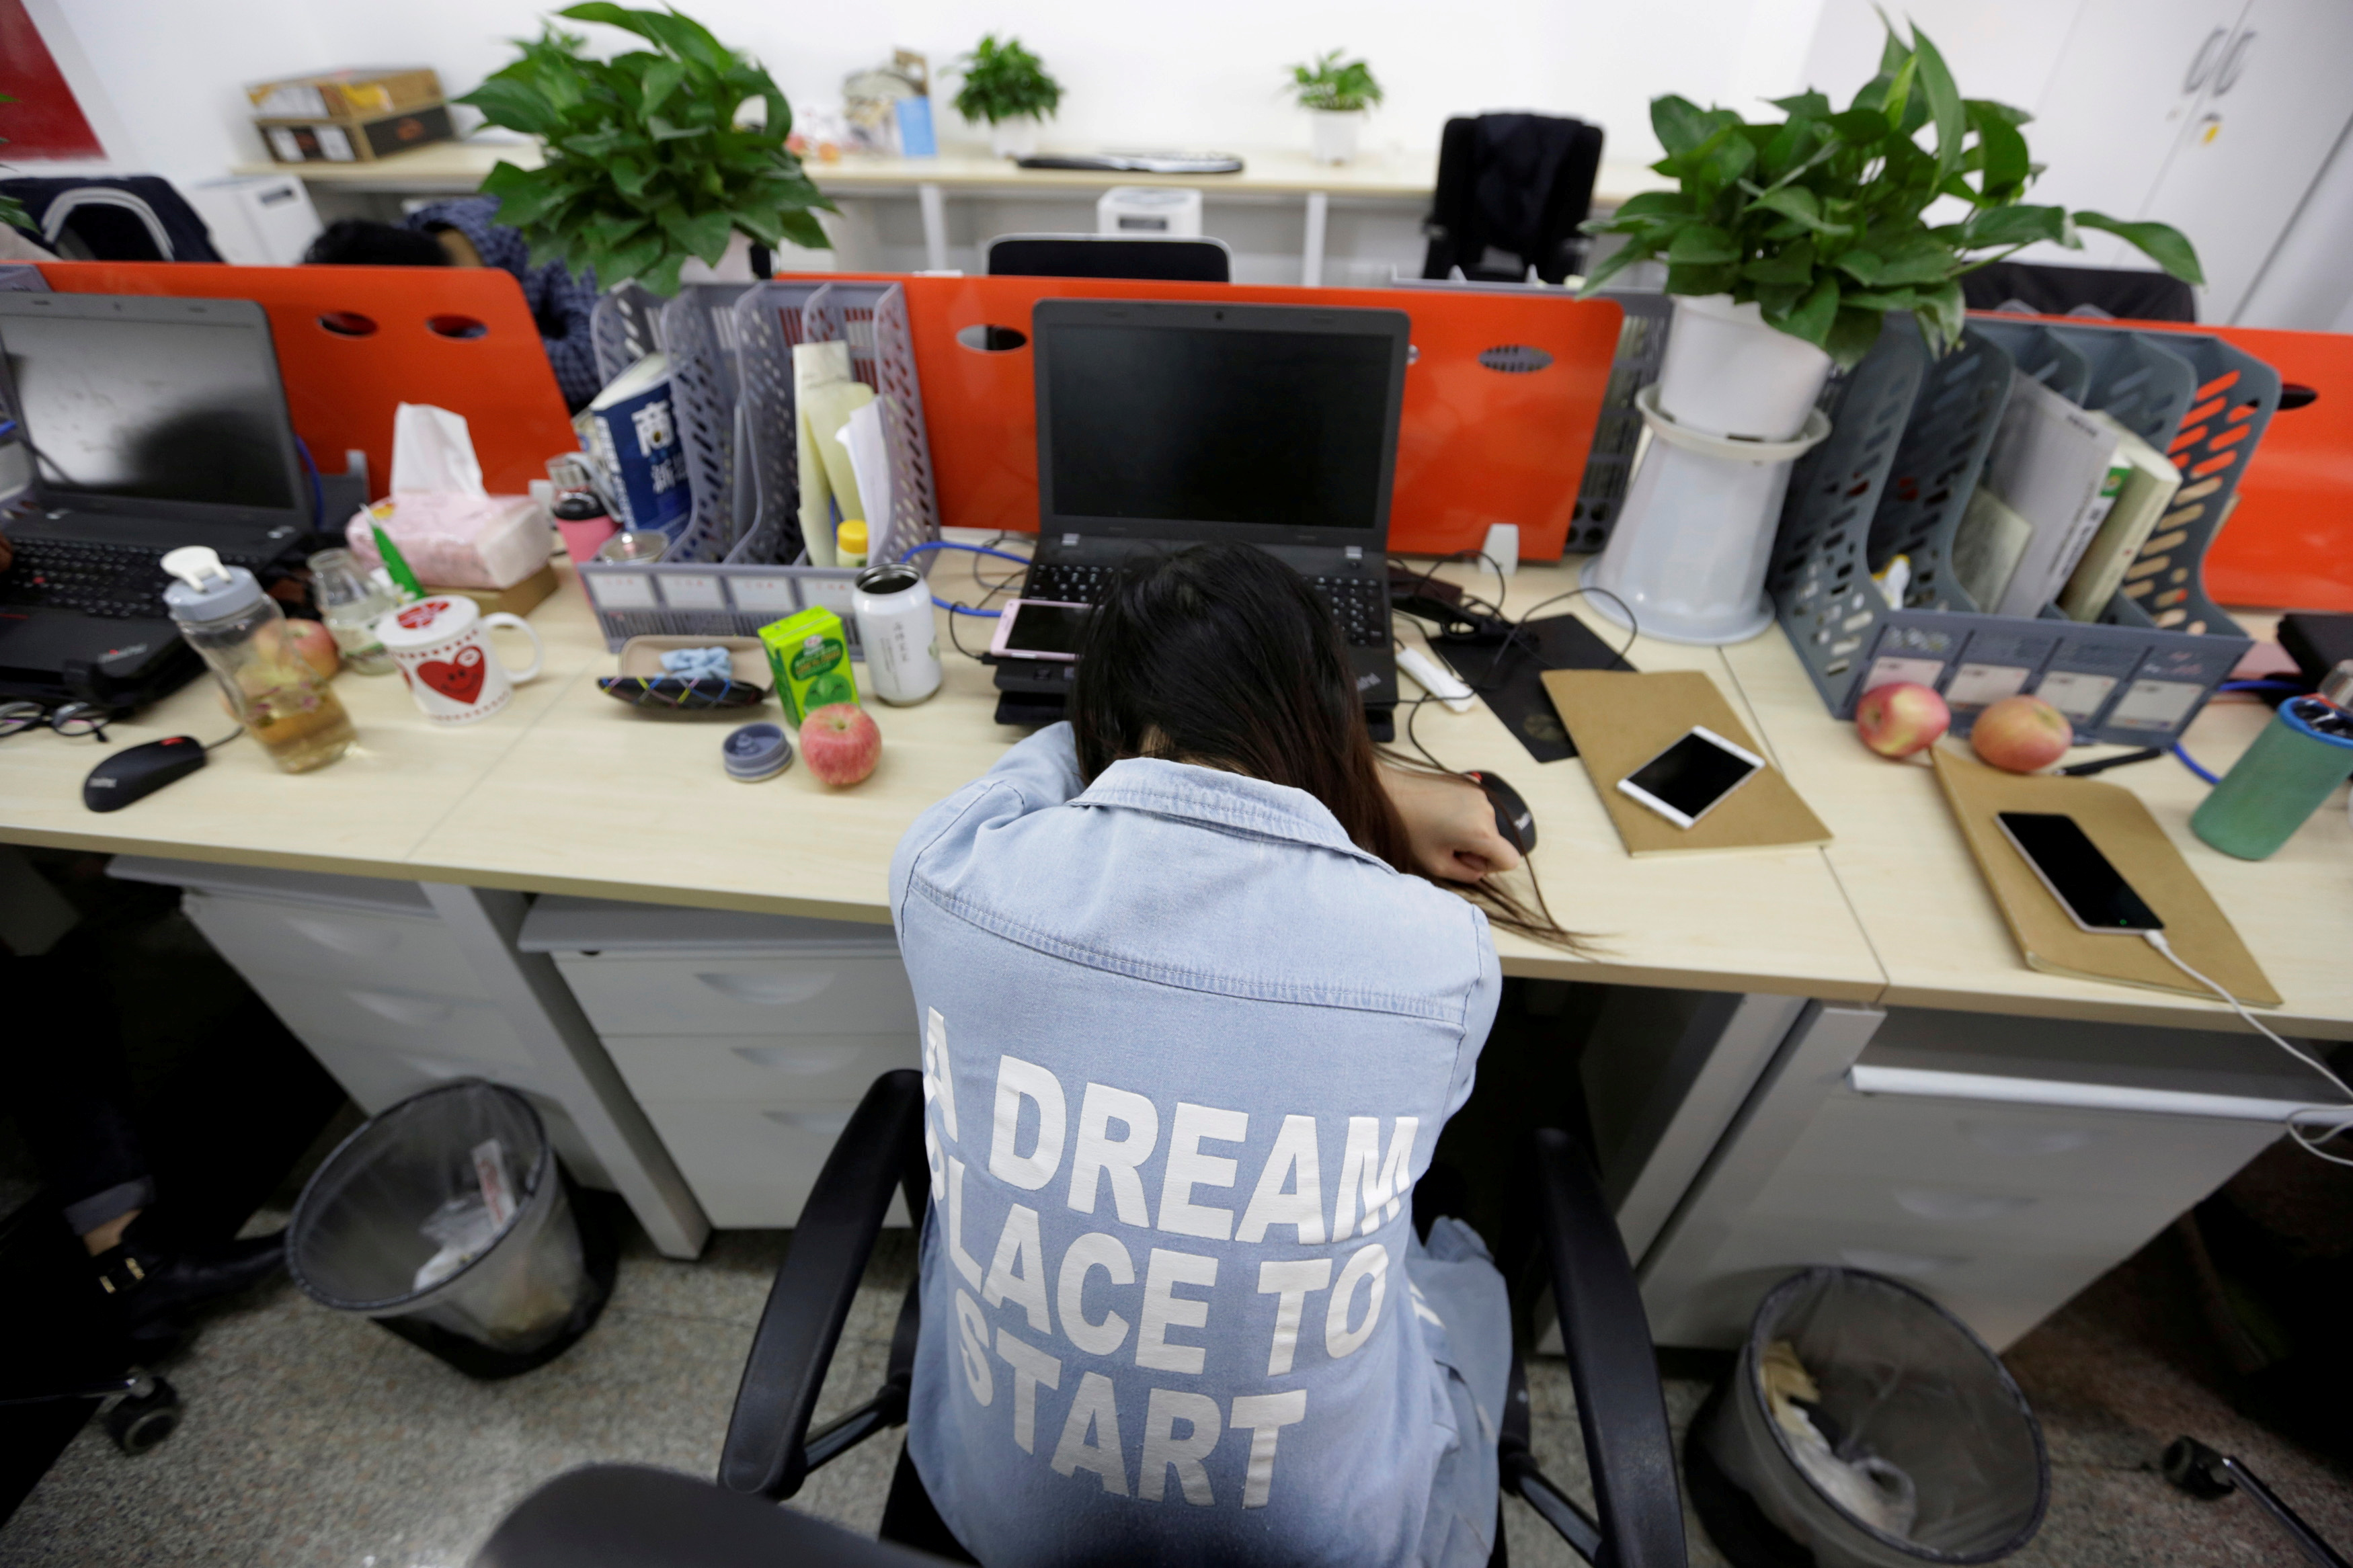 Yang Juan, an employee at Goopal Group, takes a nap in her seat after lunch, in Beijing, China, April 21, 2016. Office workers sleeping on the job is a common sight in China where workers often burn the midnight oil to meet deadlines and compete with their rivals. REUTERS/Jason Lee/File Photo